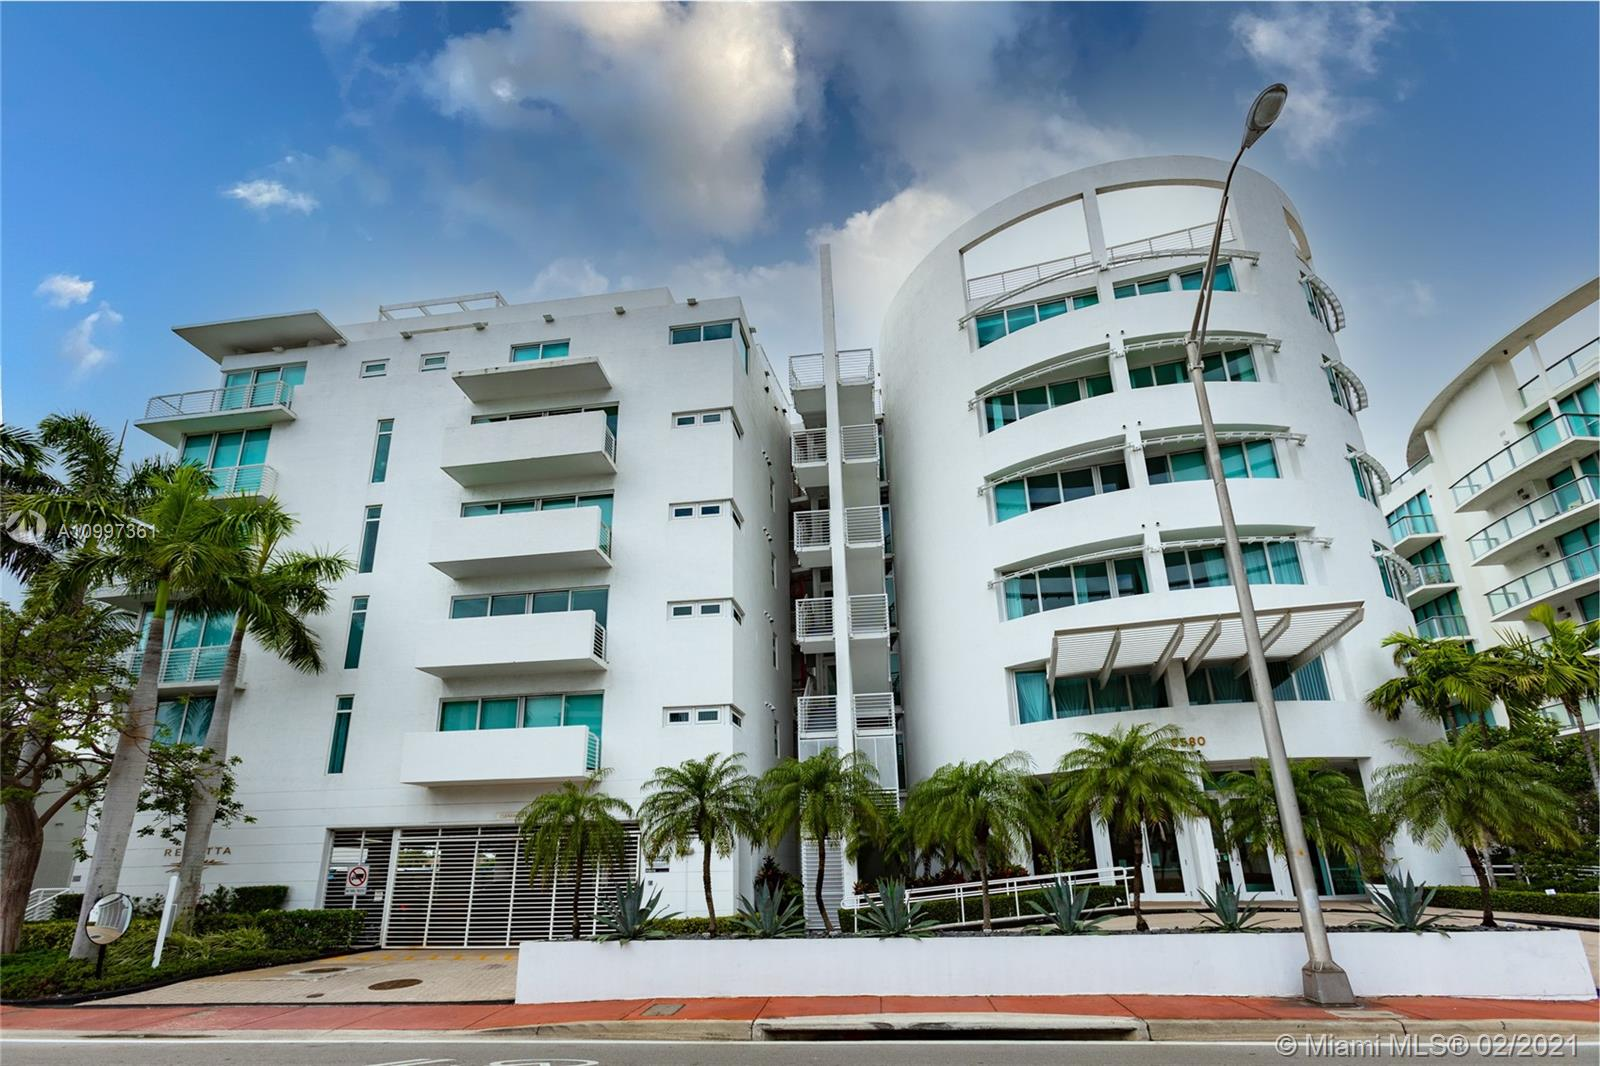 Beautiful unit located in the Intercoastal. Water and city views. Building offers 24 hours concierge, gated parking, garage, pool and hot tub, sauna, gym. The association offers docks for rent. This 2 bedrooms and 2 baths has porcelain floors, washer and dryer, modern kitchen with quartz countertops. Walking distance to the beach and close to restaurants and shopping.